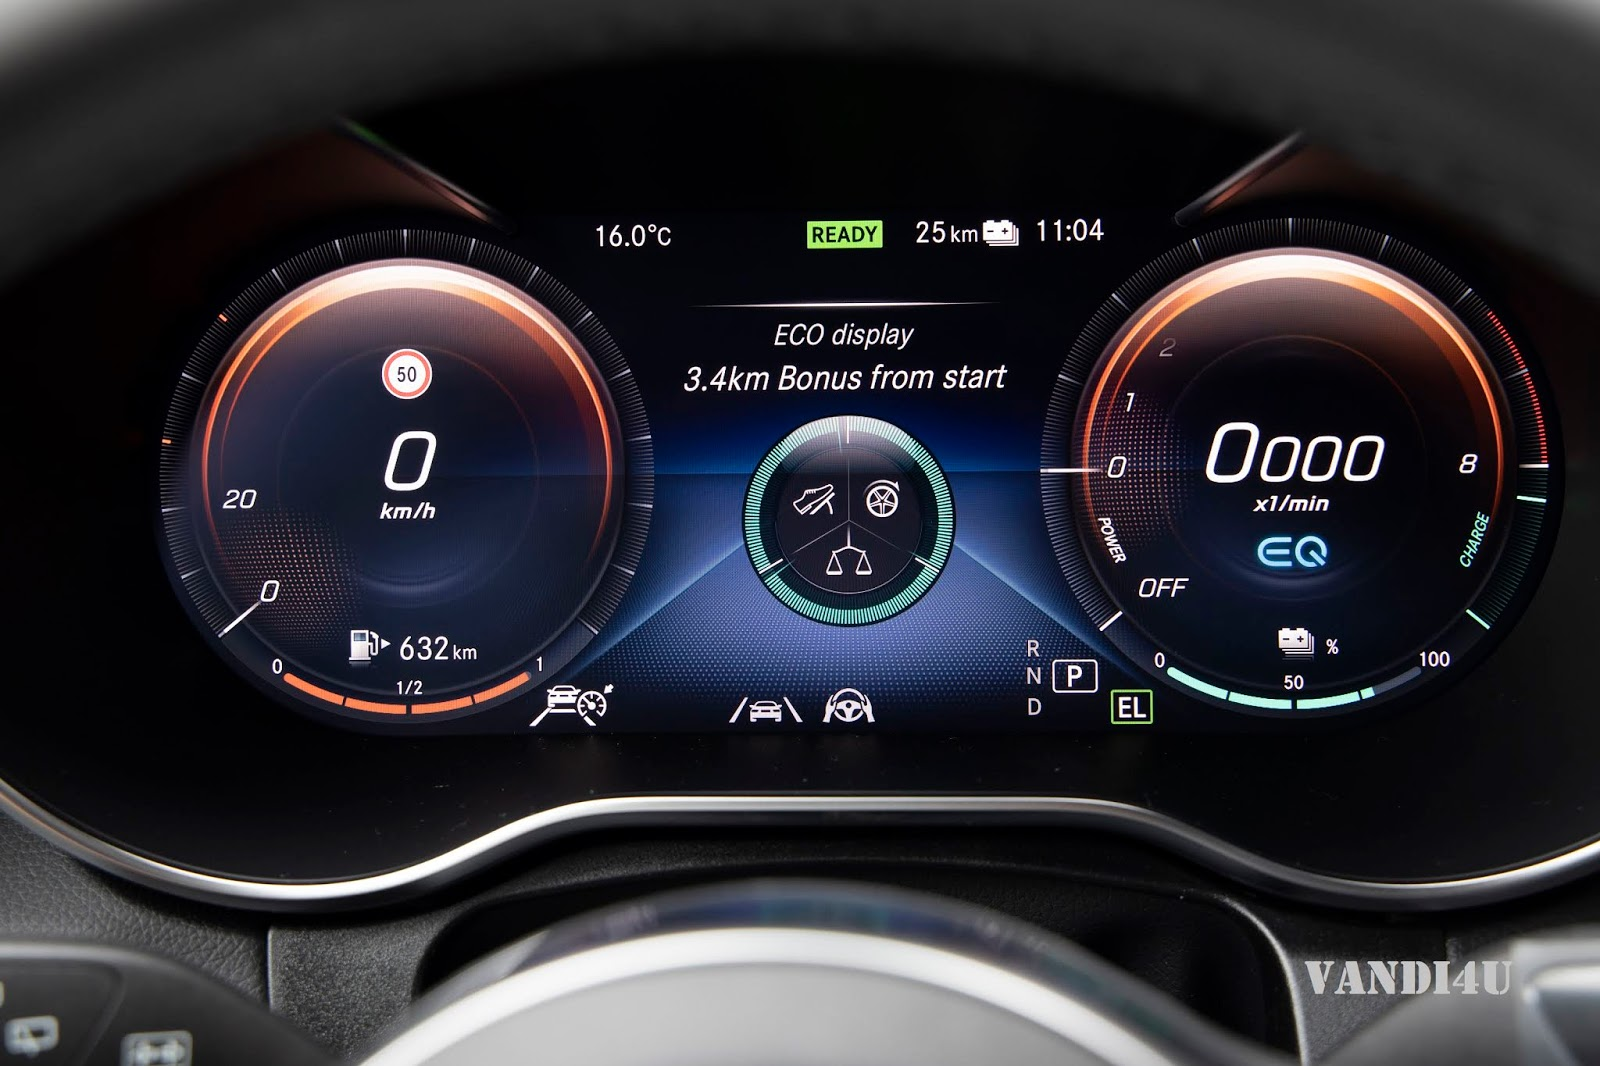 EQ Power:The Family Of Mercedes-Benz Plug-in Hybrids Is Expanding | VANDI4U